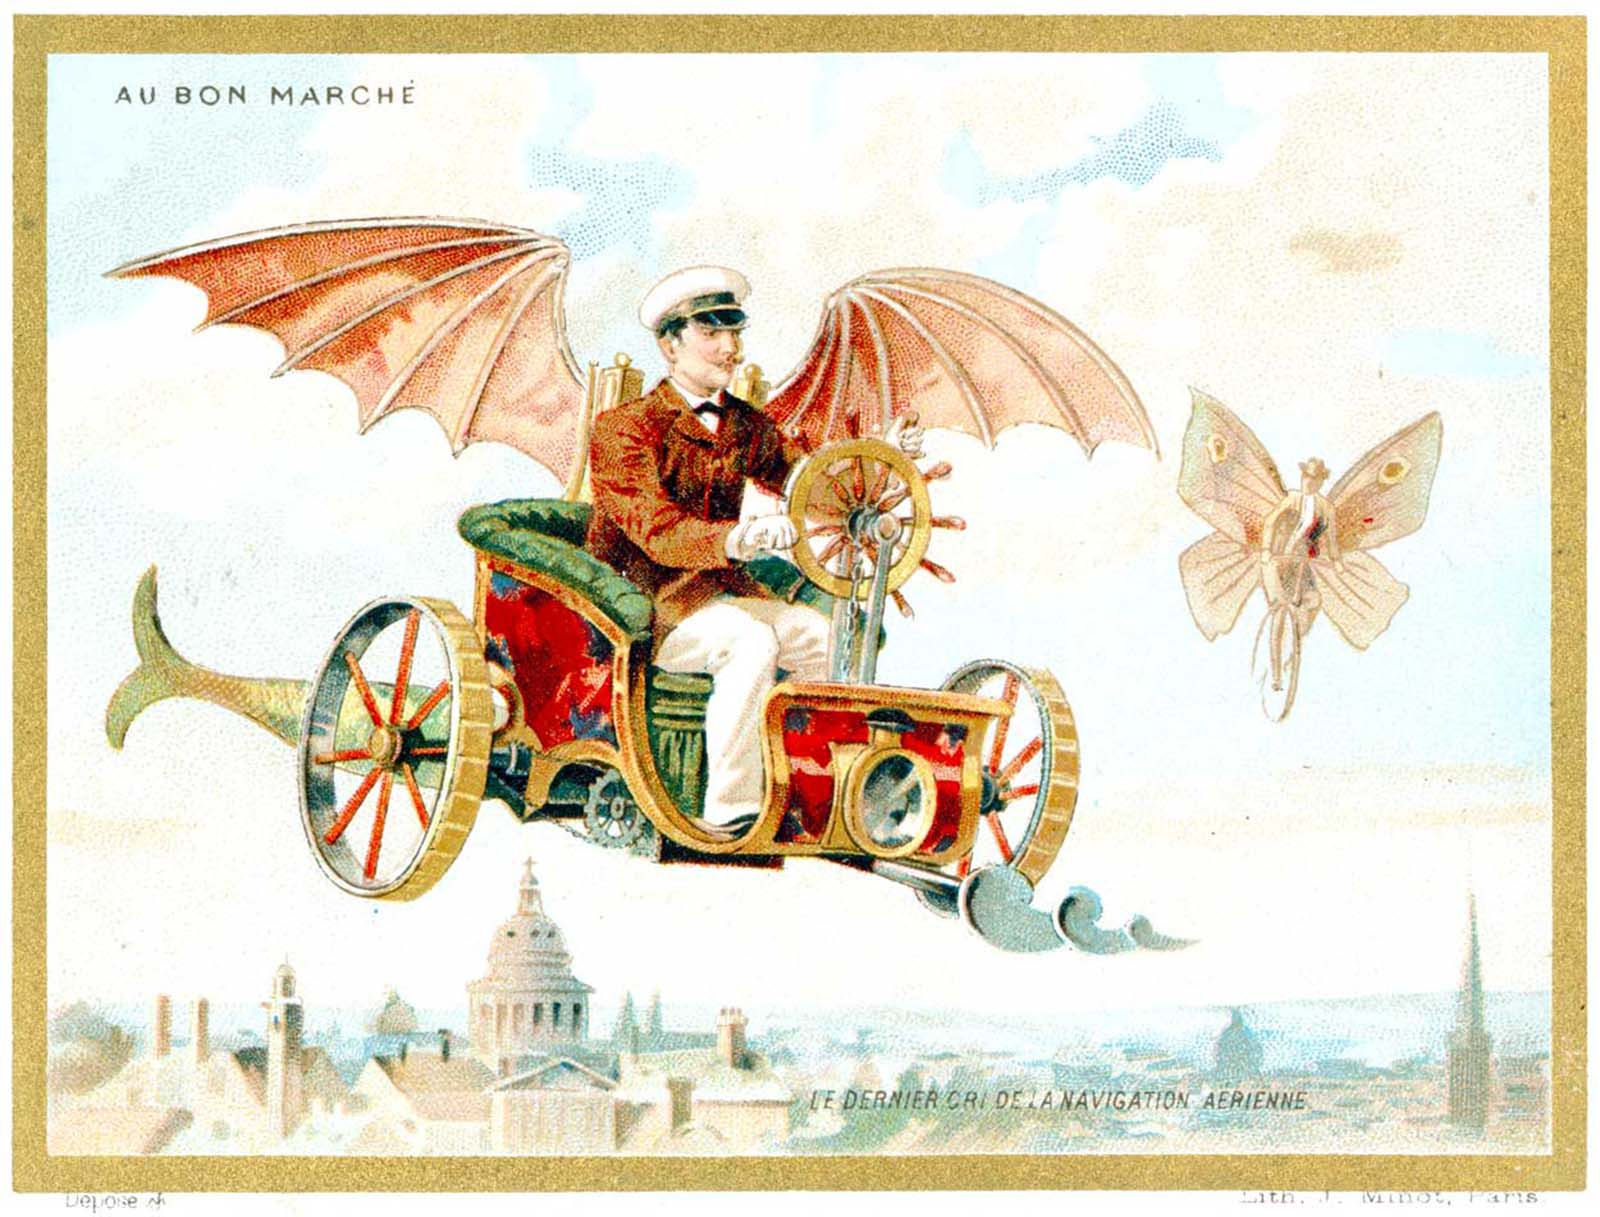 Au Bon Marche company issued comical futuristic ad cards like this one of a flying car. 1890.